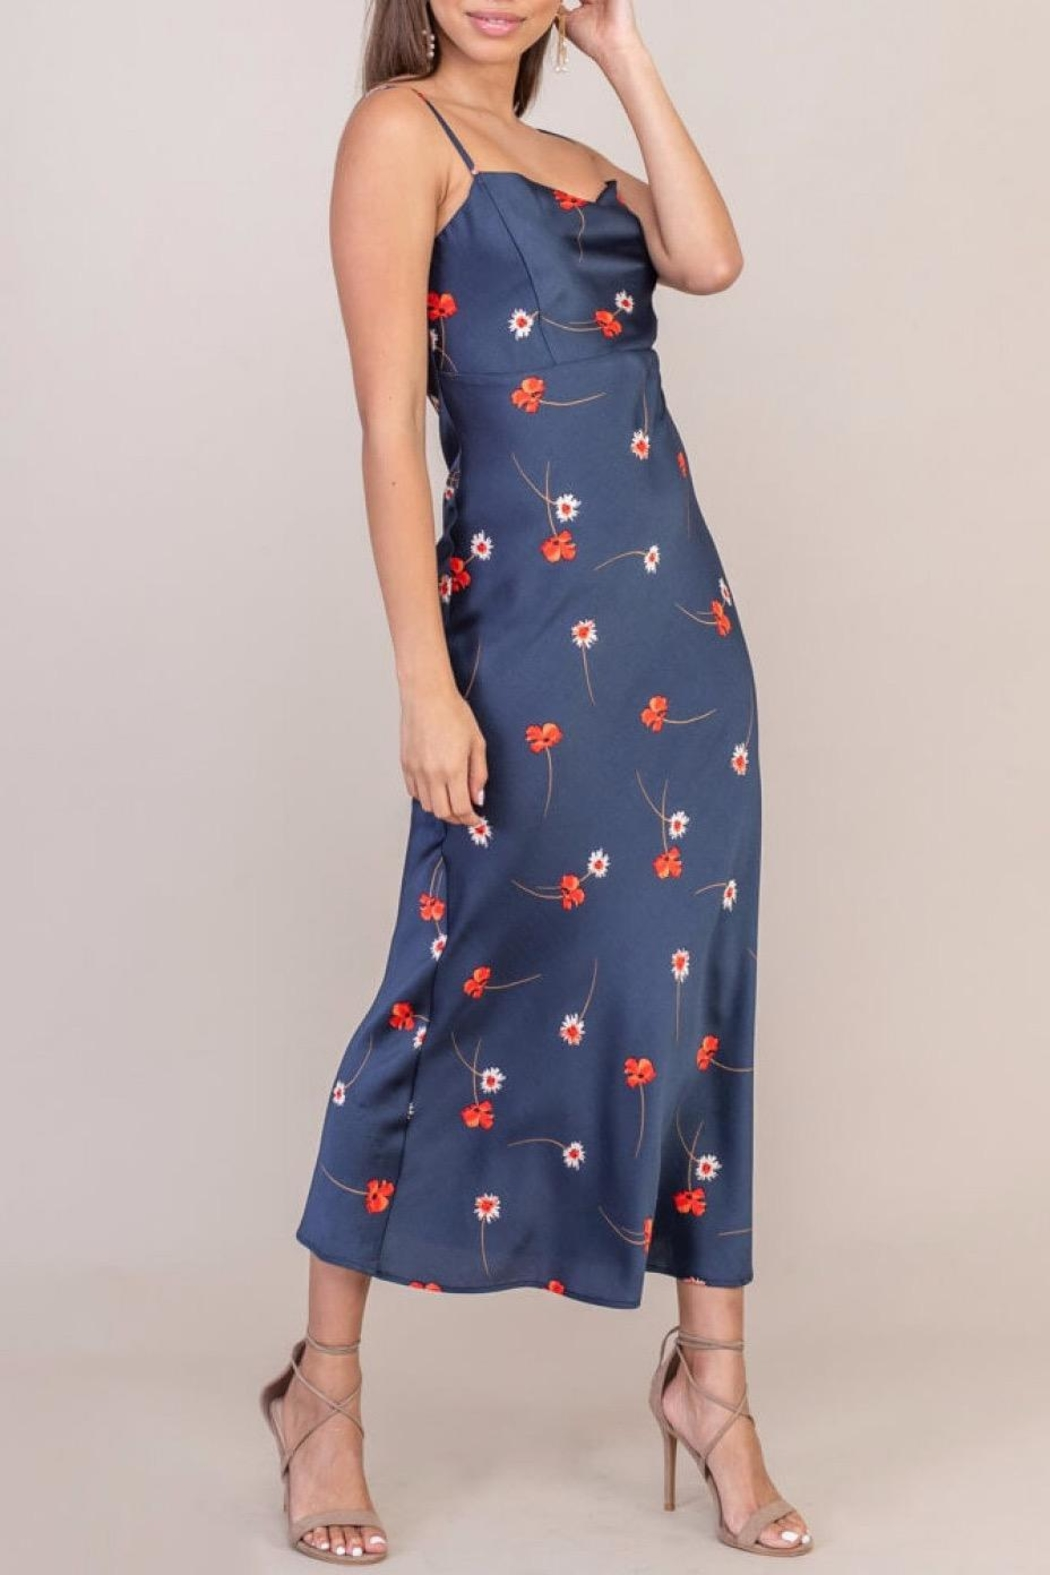 Lush Clothing  Floral Print Satin Dress - Front Full Image